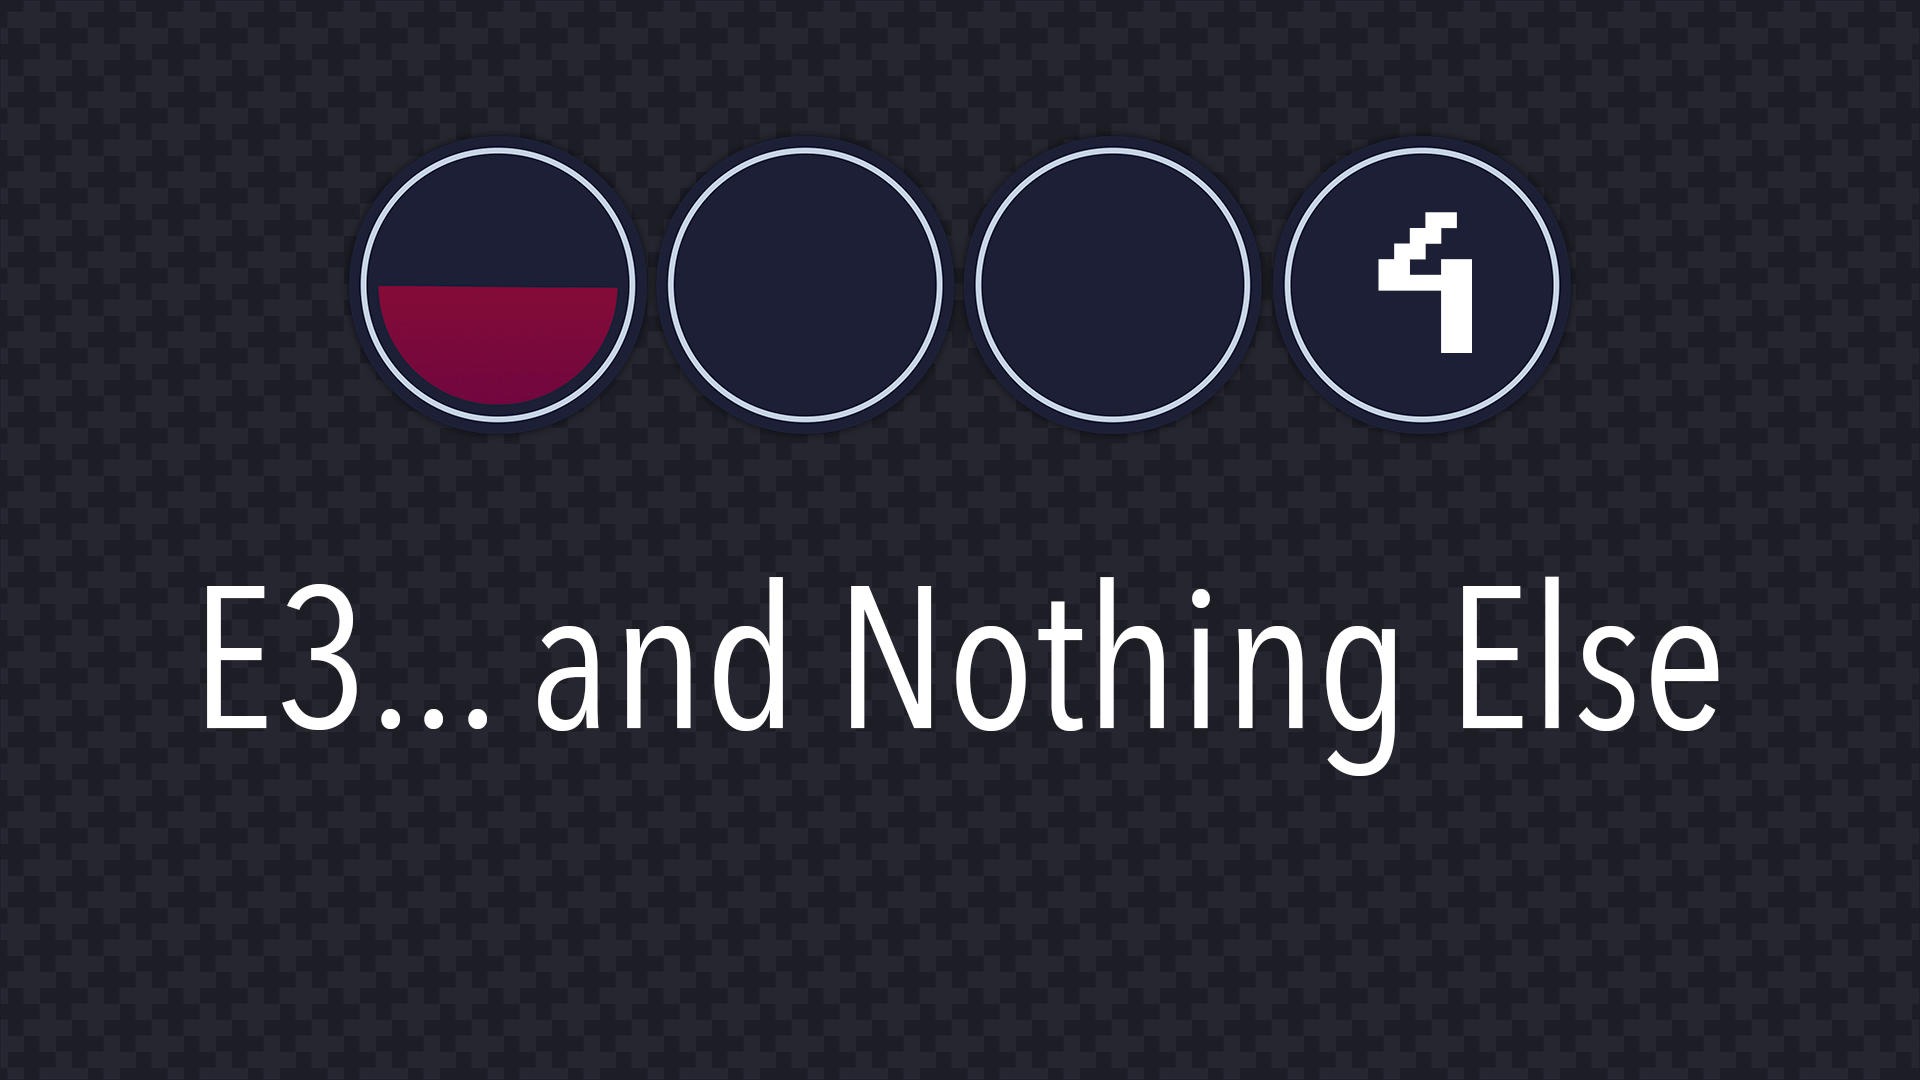 Last Life Podcast 4 - E3... and Nothing Else